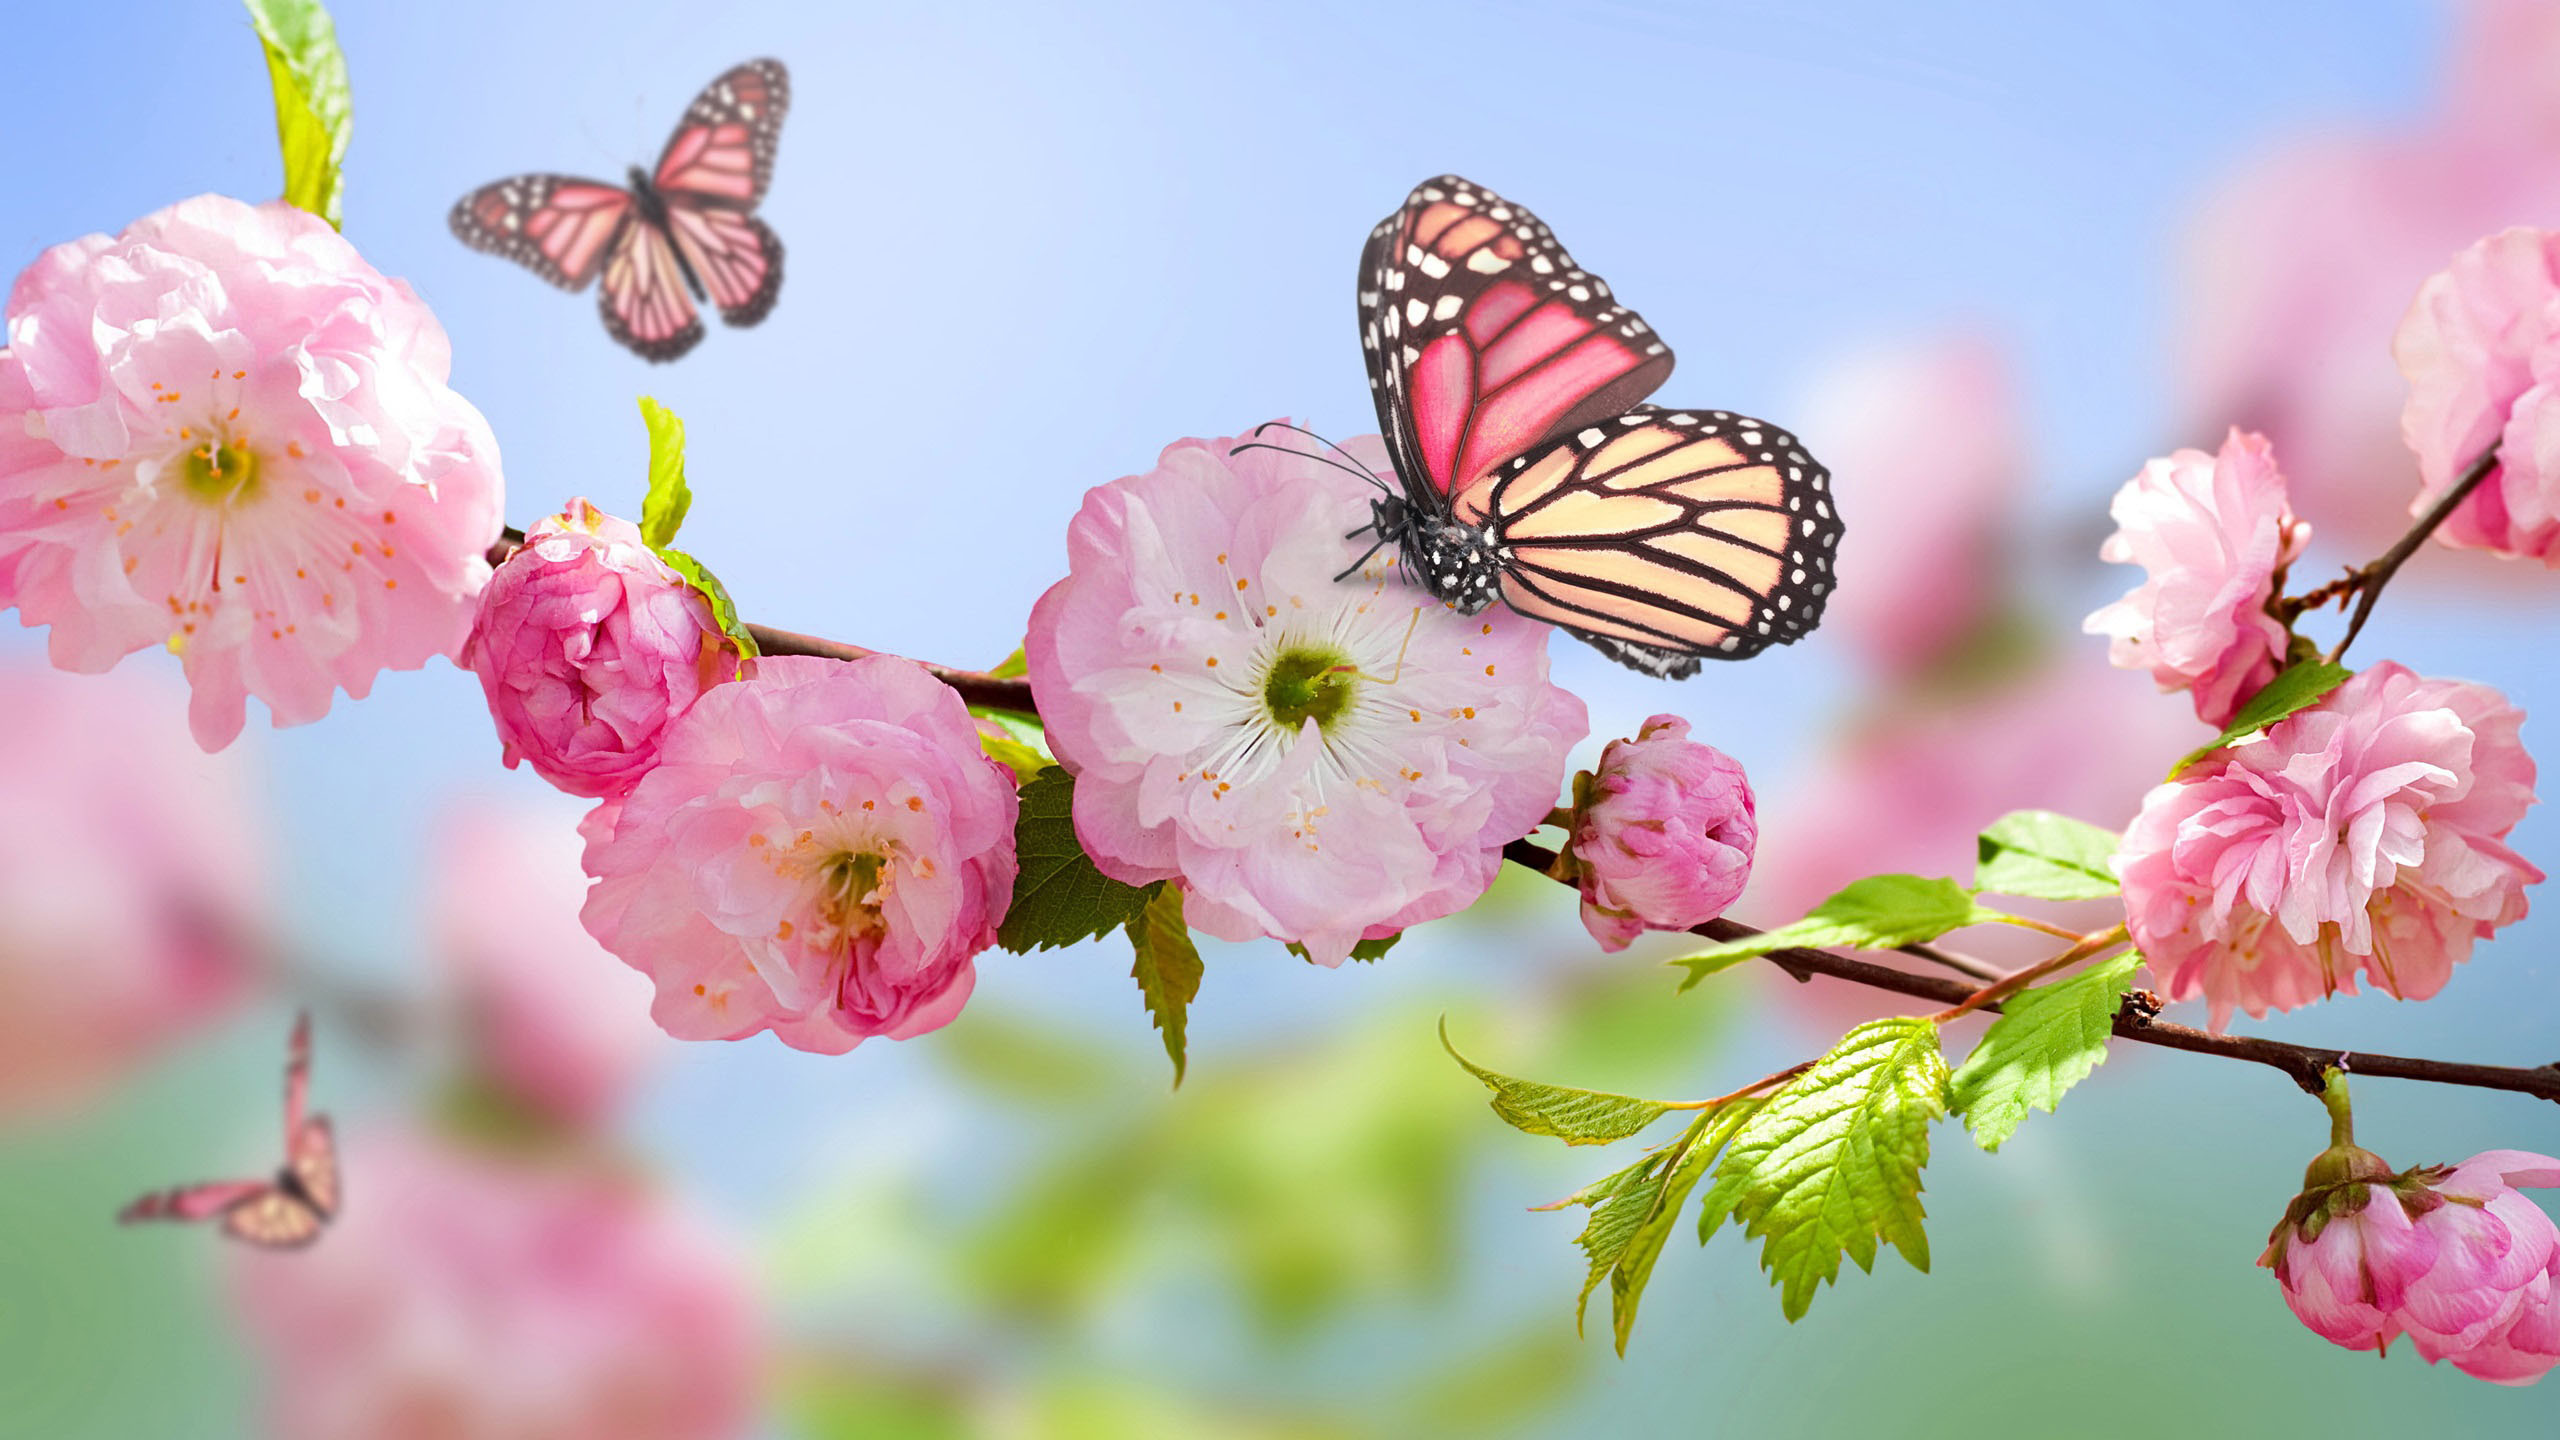 Res: 2560x1440, Spring Wallpapers